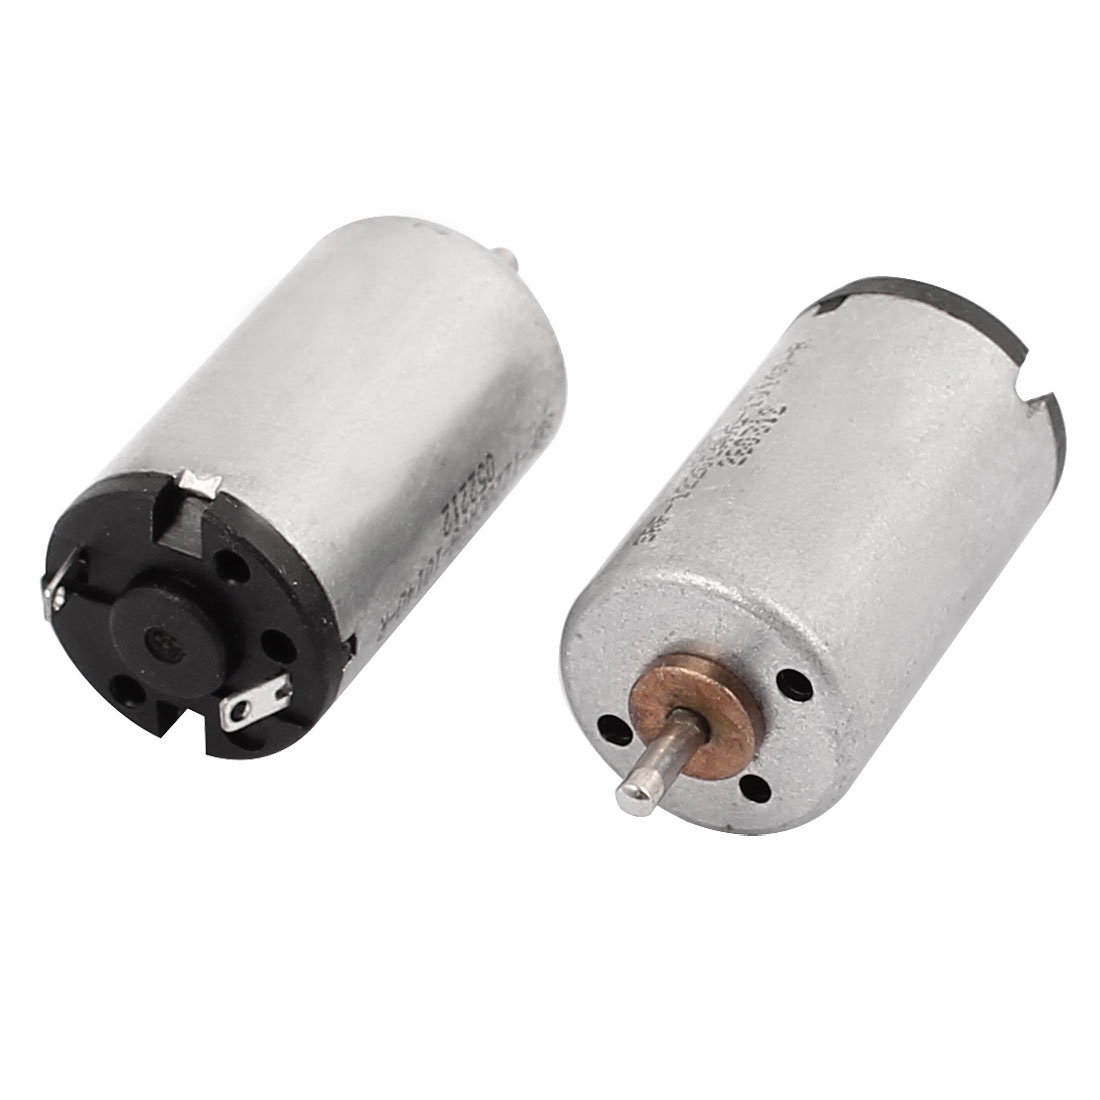 2Pcs DC 1.25-3.7V 22000RPM Large Torque Cylindrical Micro DC Motor for Electric Toy